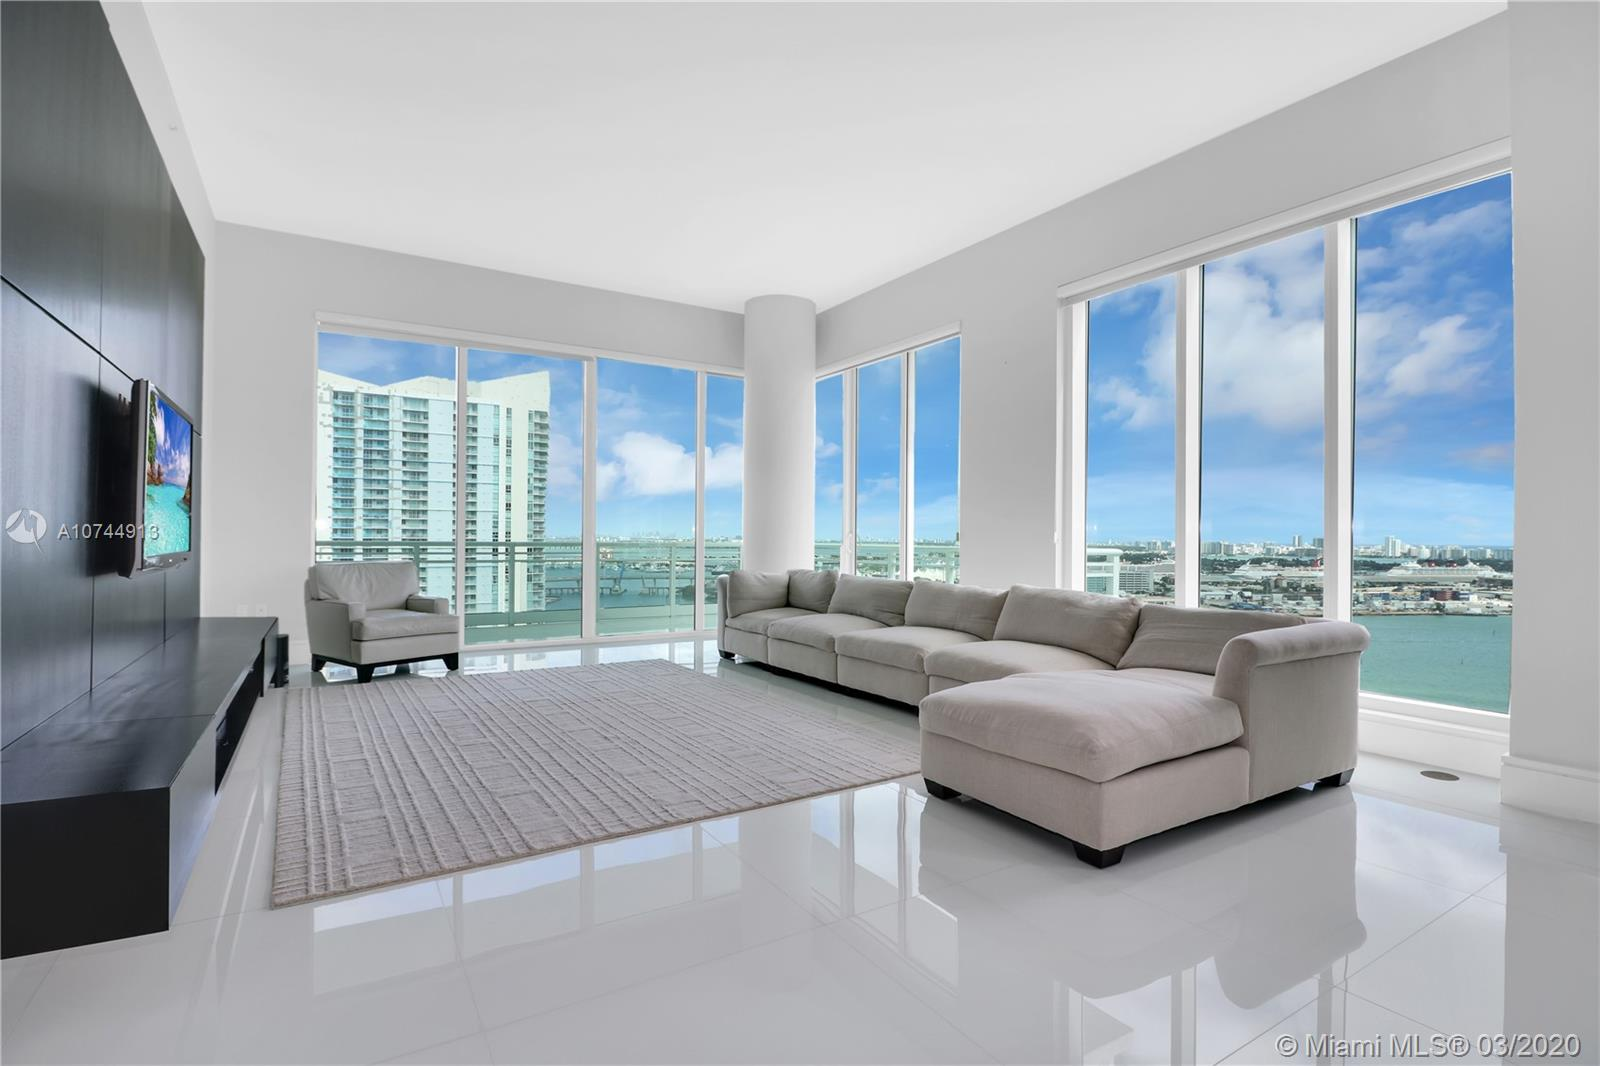 ASIA RESIDENCE FEATURES A PRIVATE ELEVATOR. 12FT. CEILINGS, GLASS BALCONIES AND FLOOR-TO-FLOOR CEILING WINDOWS. MAGNIFICENT WATER VIEWS. 5 BEDROOM, 5.5 BATH WITH MAID QUARTERS, DEN OR MEDIA ROOM, AND SEPARATE LAUNDRY WITH SERVICE ENTRANCE. TOP OF THE LINE STAINLESS STEEL APPLIANCES INCLUDING WINE COOLER AND CAPPUCCINO MAKER. STORAGE AND 2 PARKING SPACES. MUST SEE IT!!!